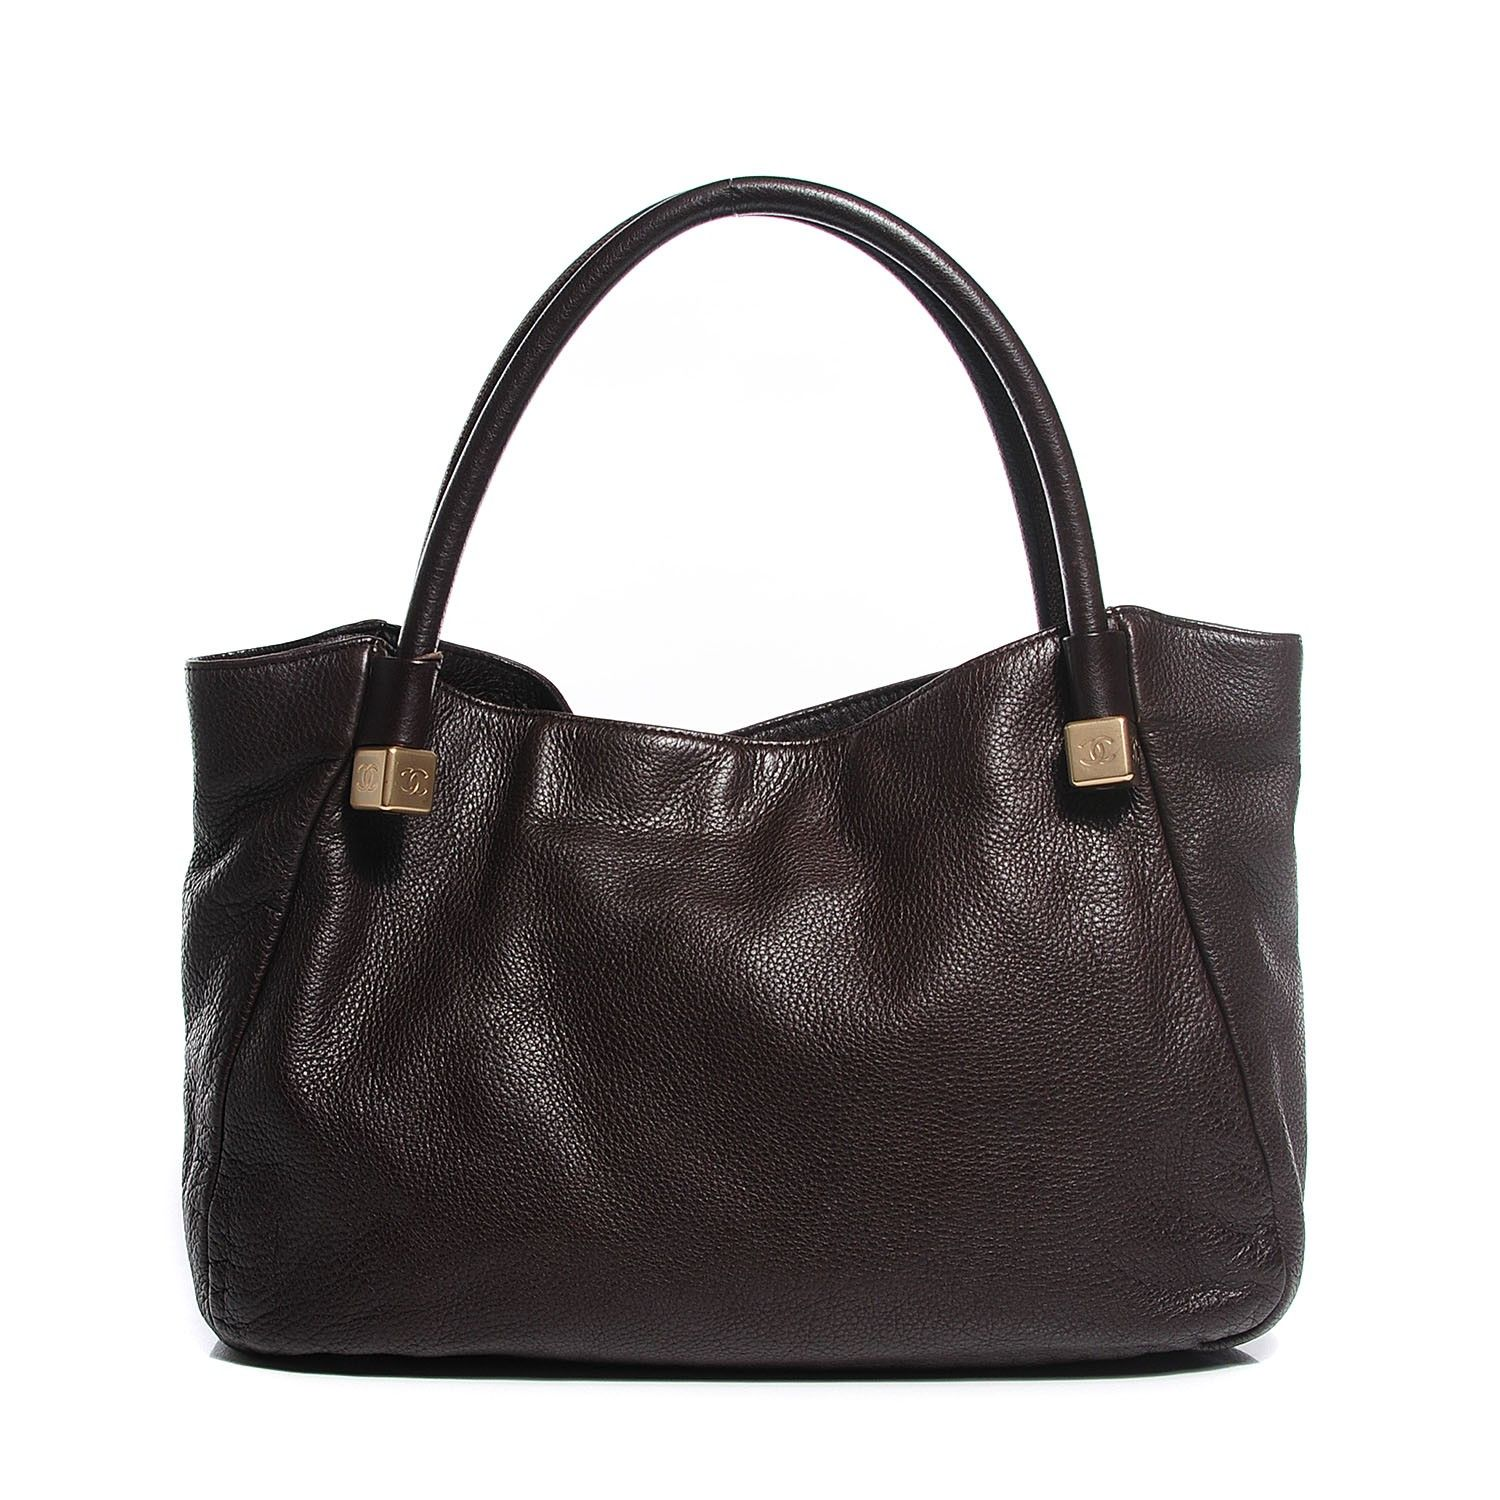 edf9e2e55938 This is an authentic CHANEL Deerskin Shoulder Bag in Brown. This stylish  tote is crafted